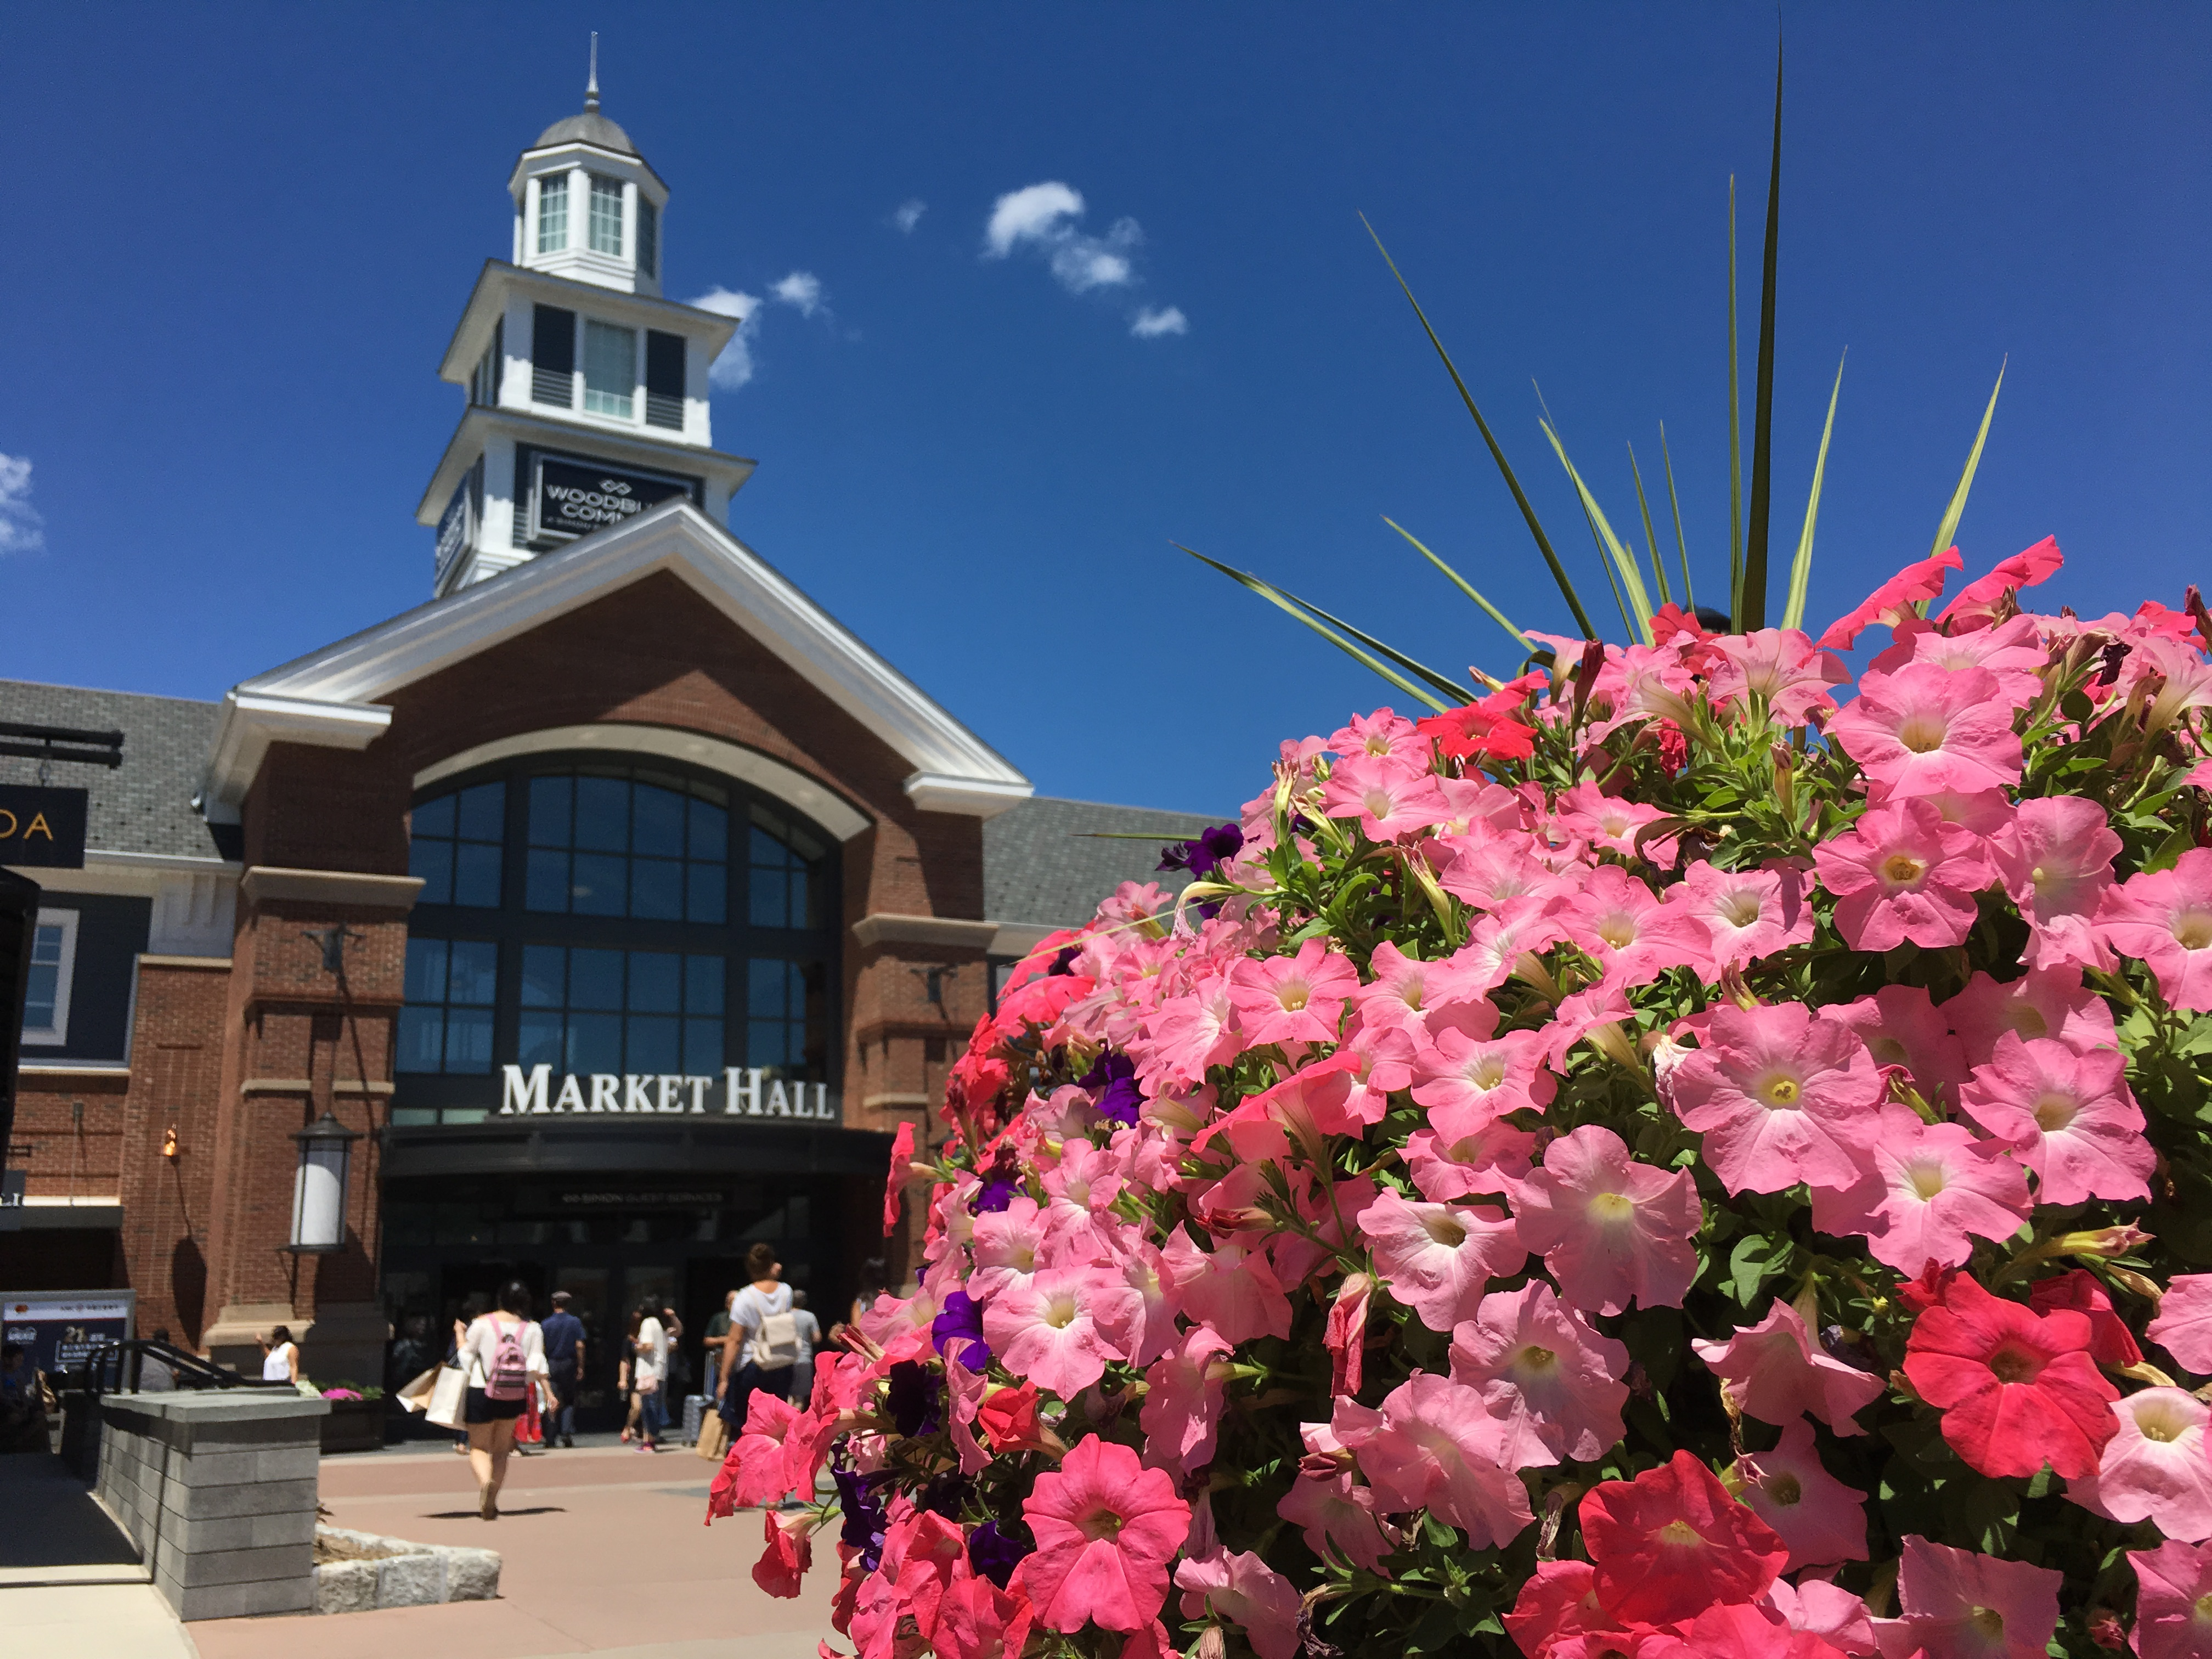 Shop, Hop, and Top (4 Day Value Package) - Woodbury Commons Premium Outlet